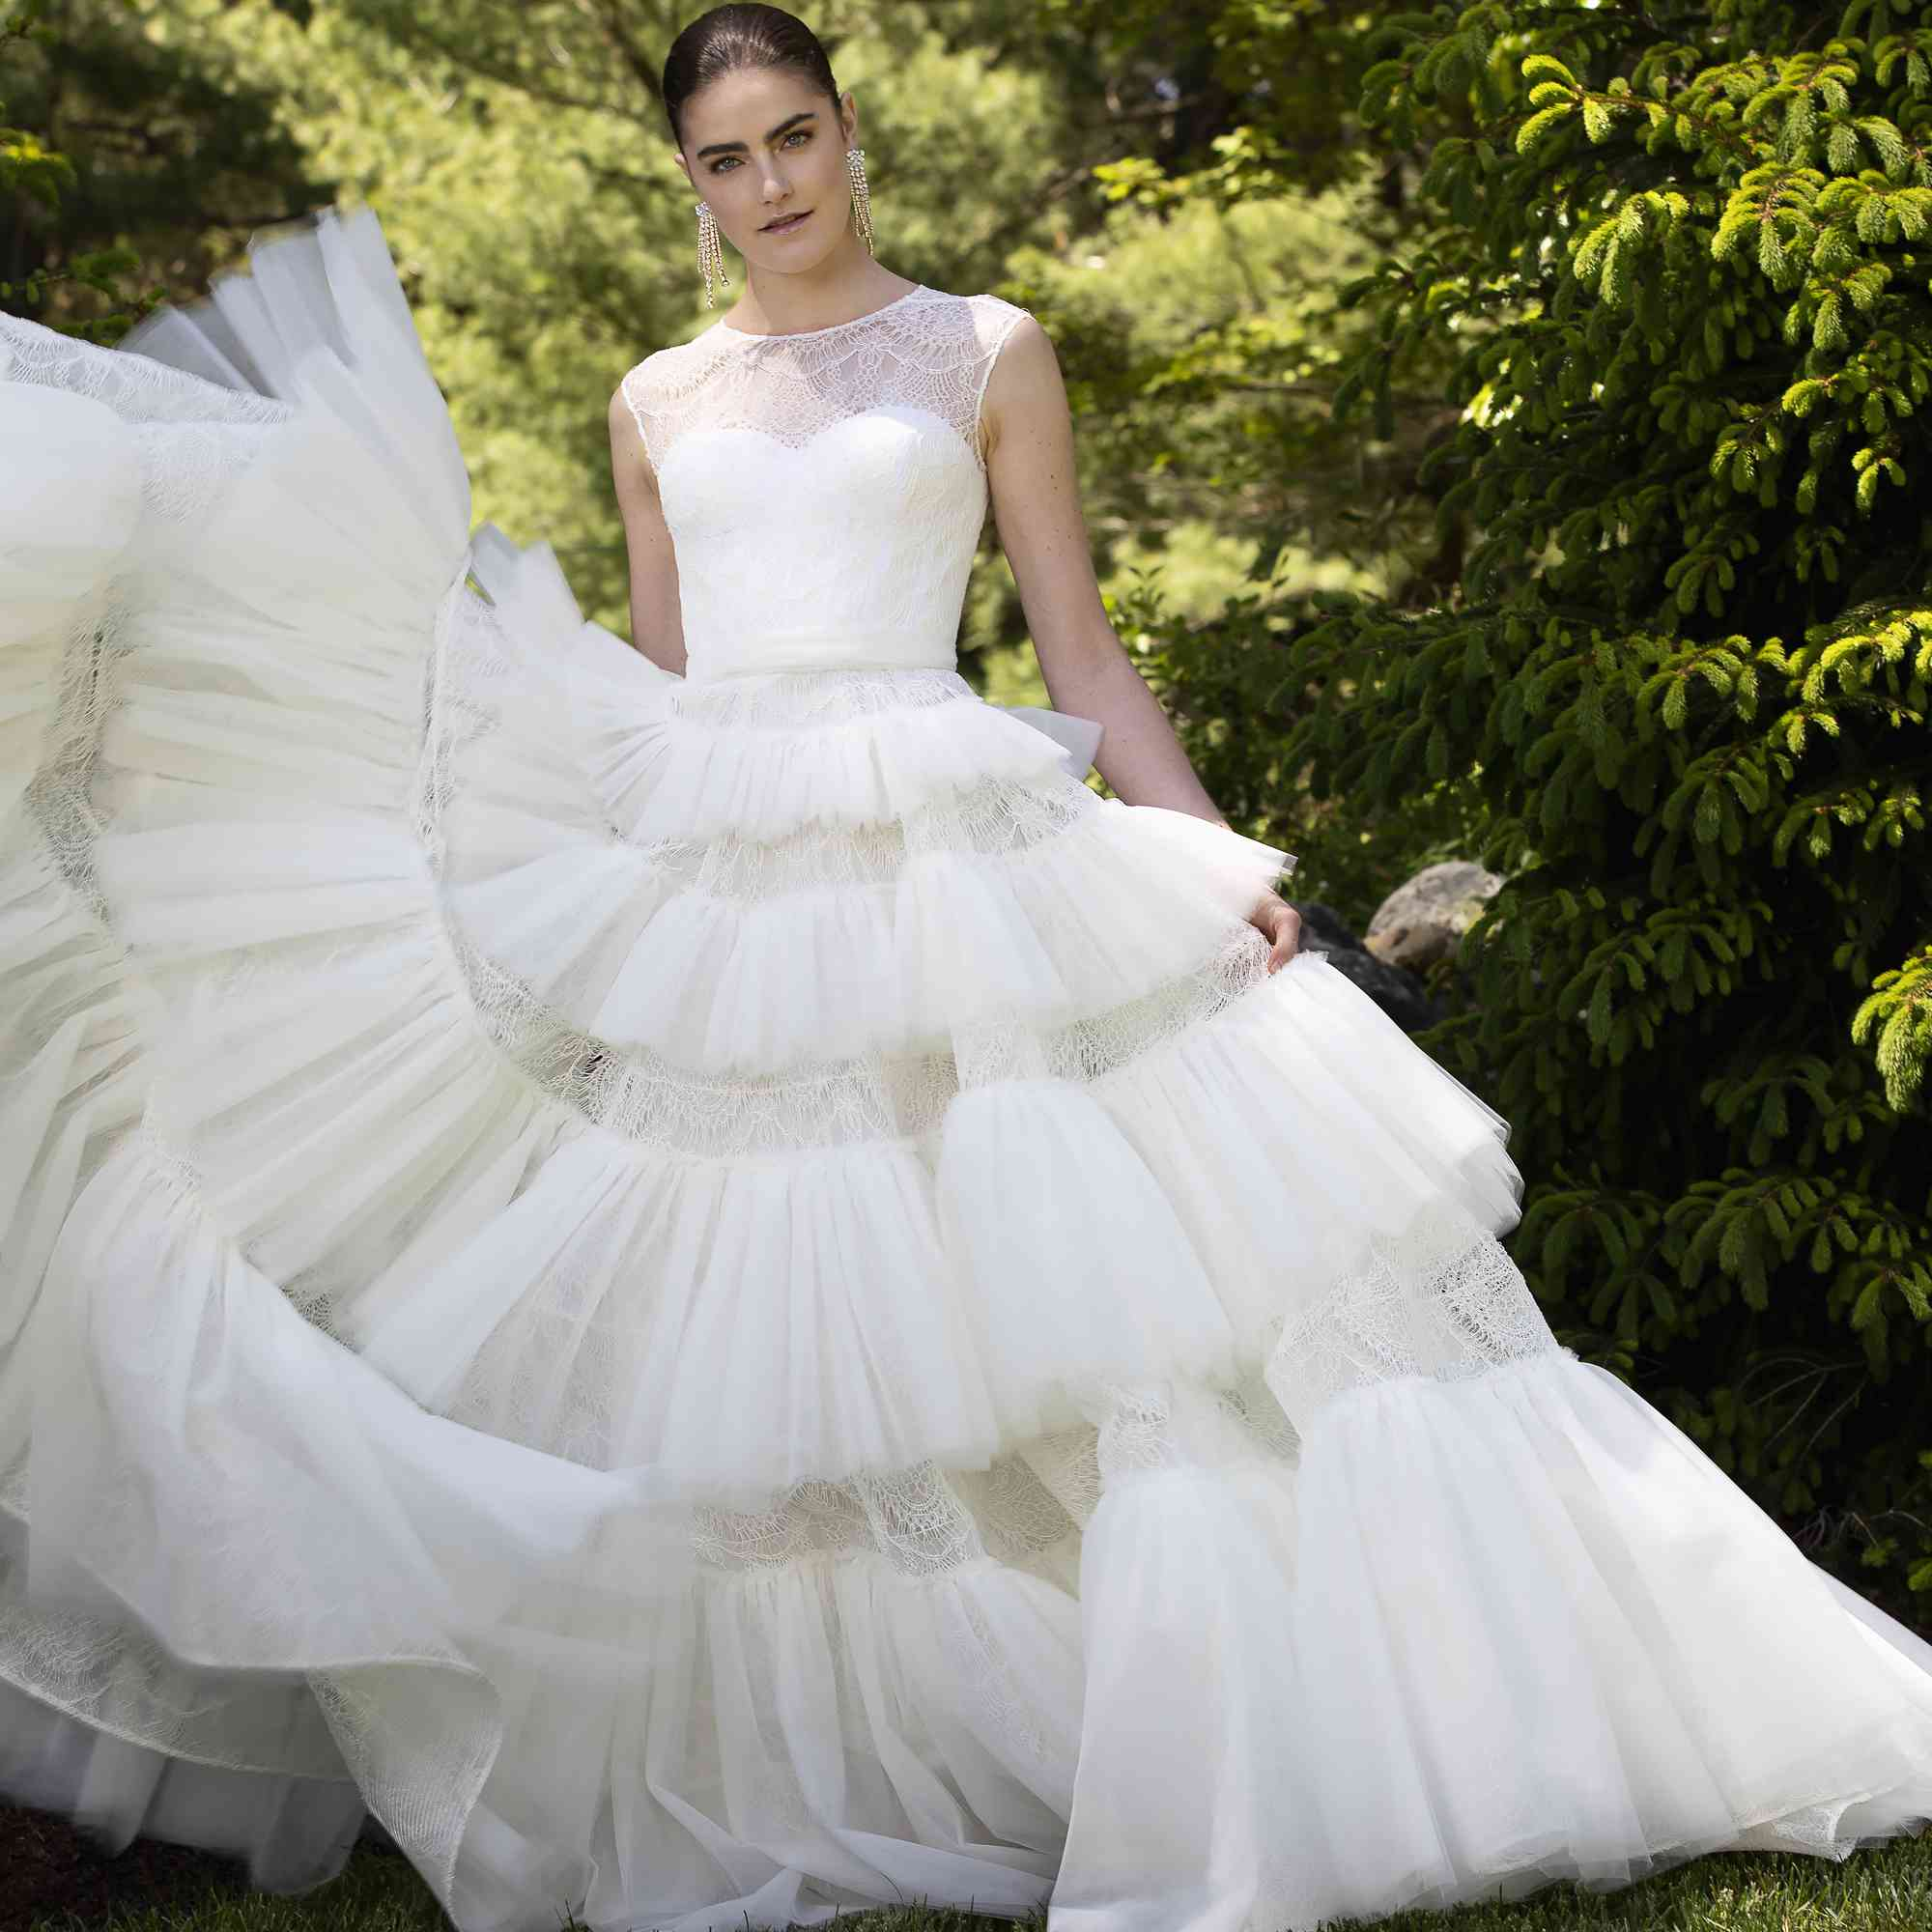 Tiered bridal gown